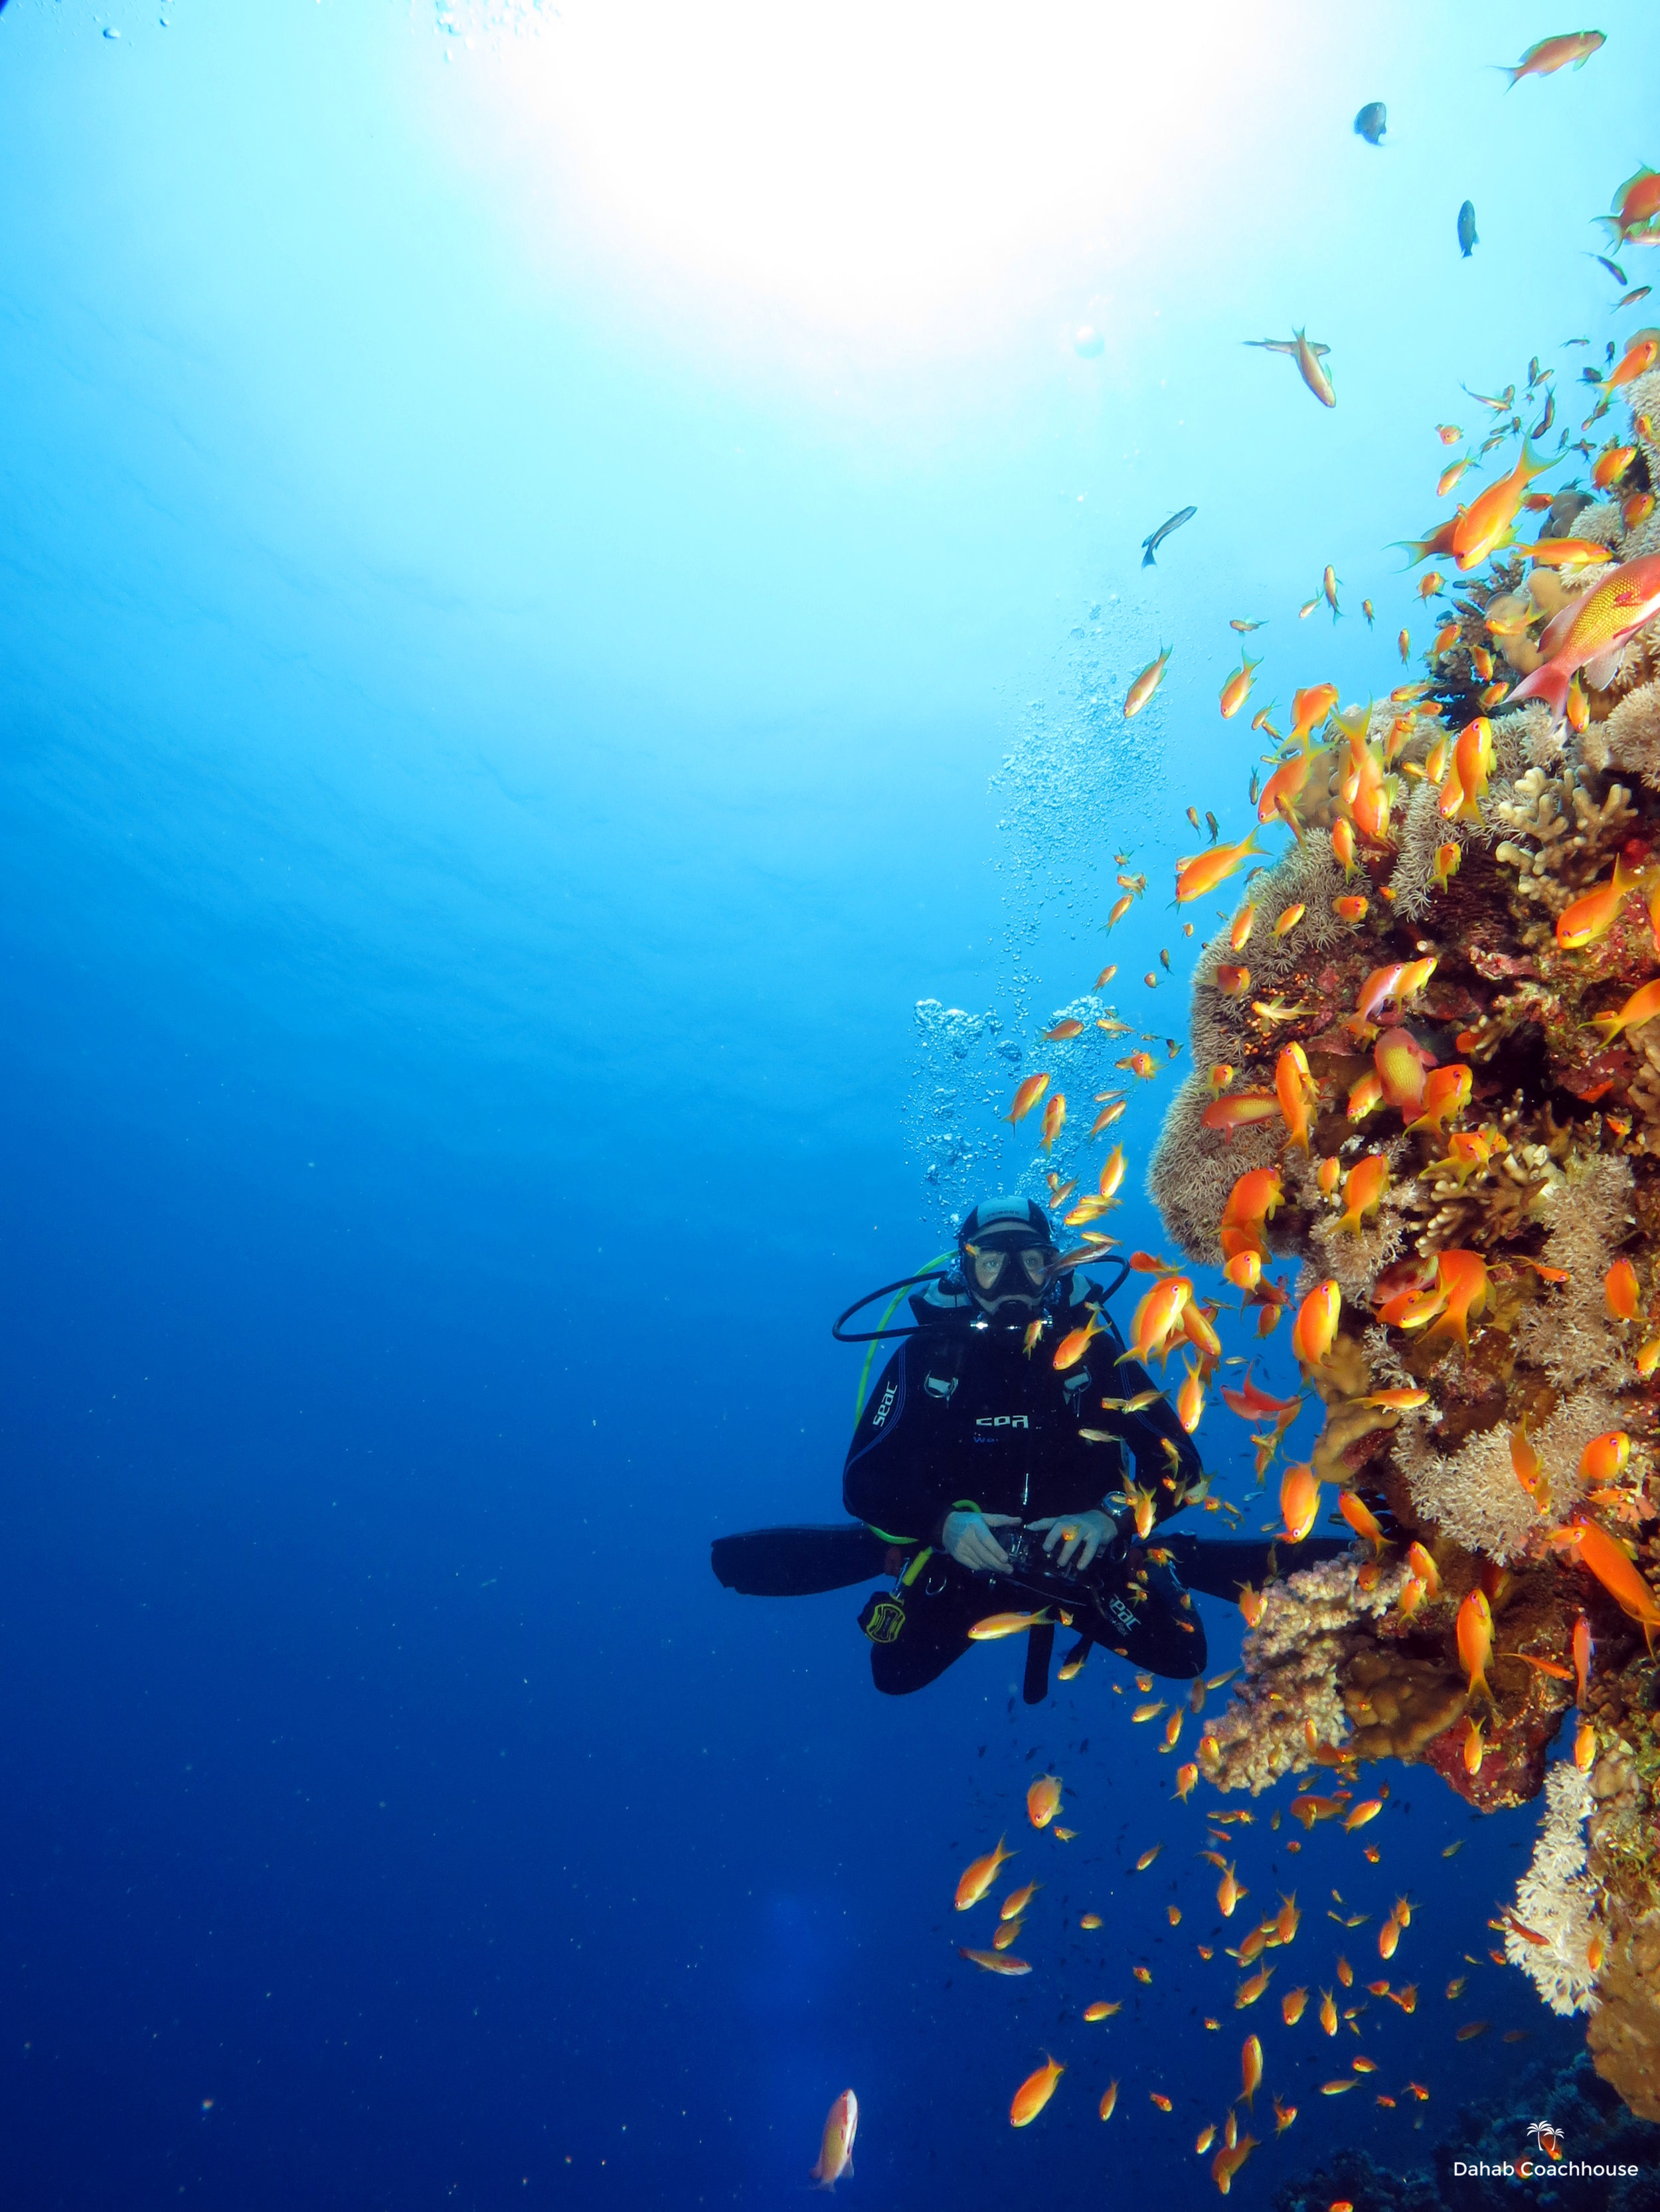 Dahab_Coachhouse_Egypt_Red_Sea_Diving_Beach_Accommodation_Holiday_Travel_Diver.JPG